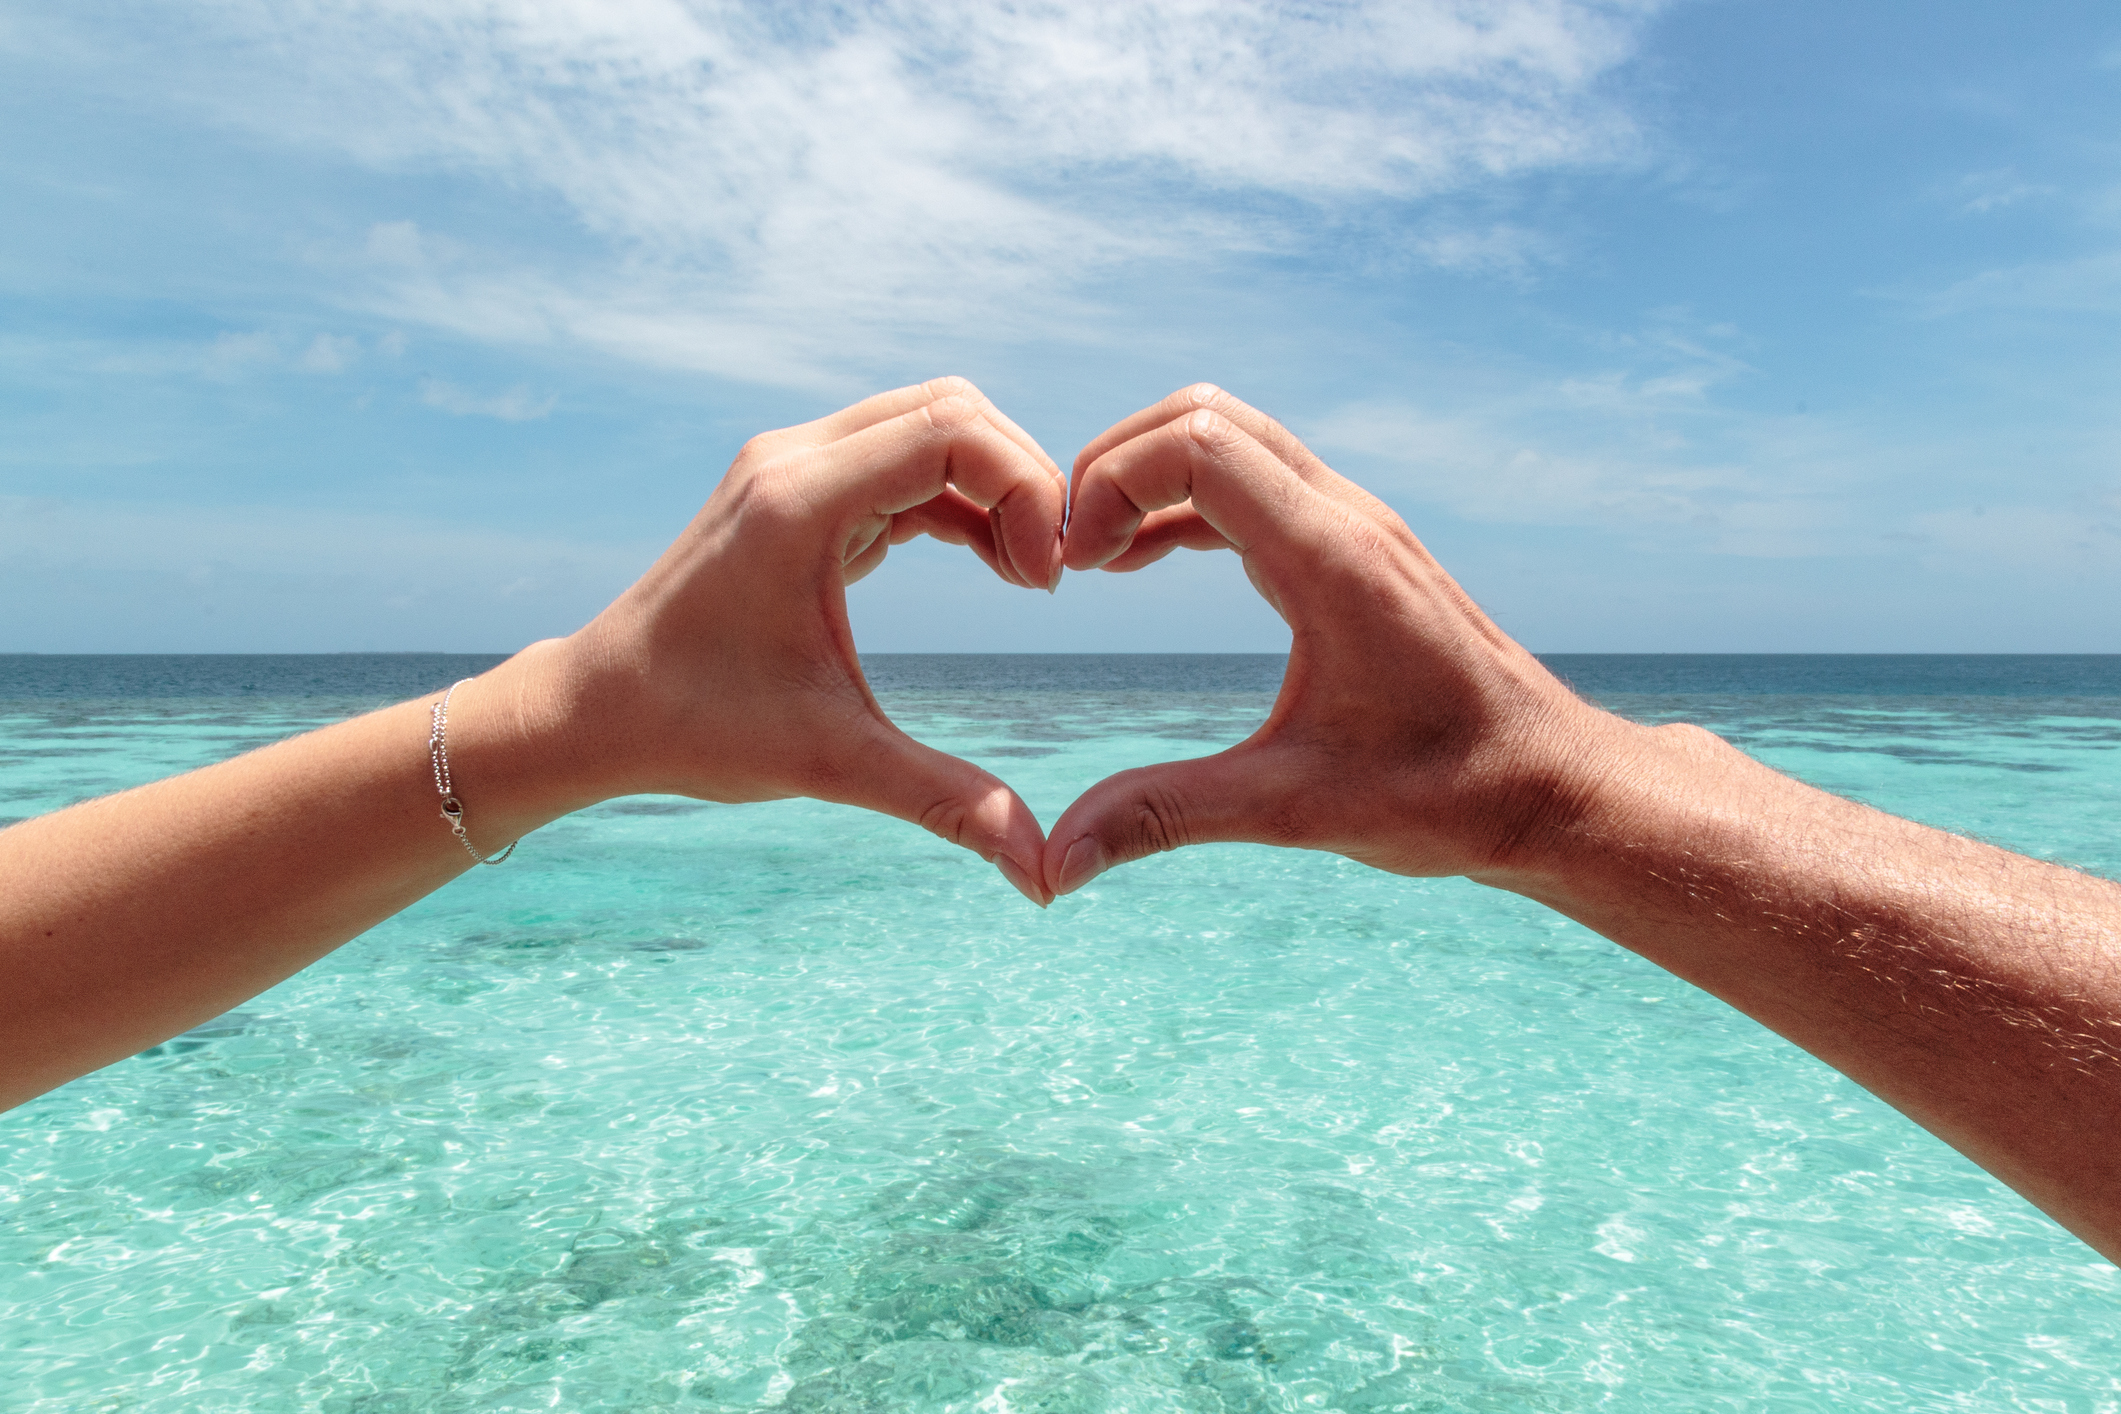 Hand-hearts-blue-water